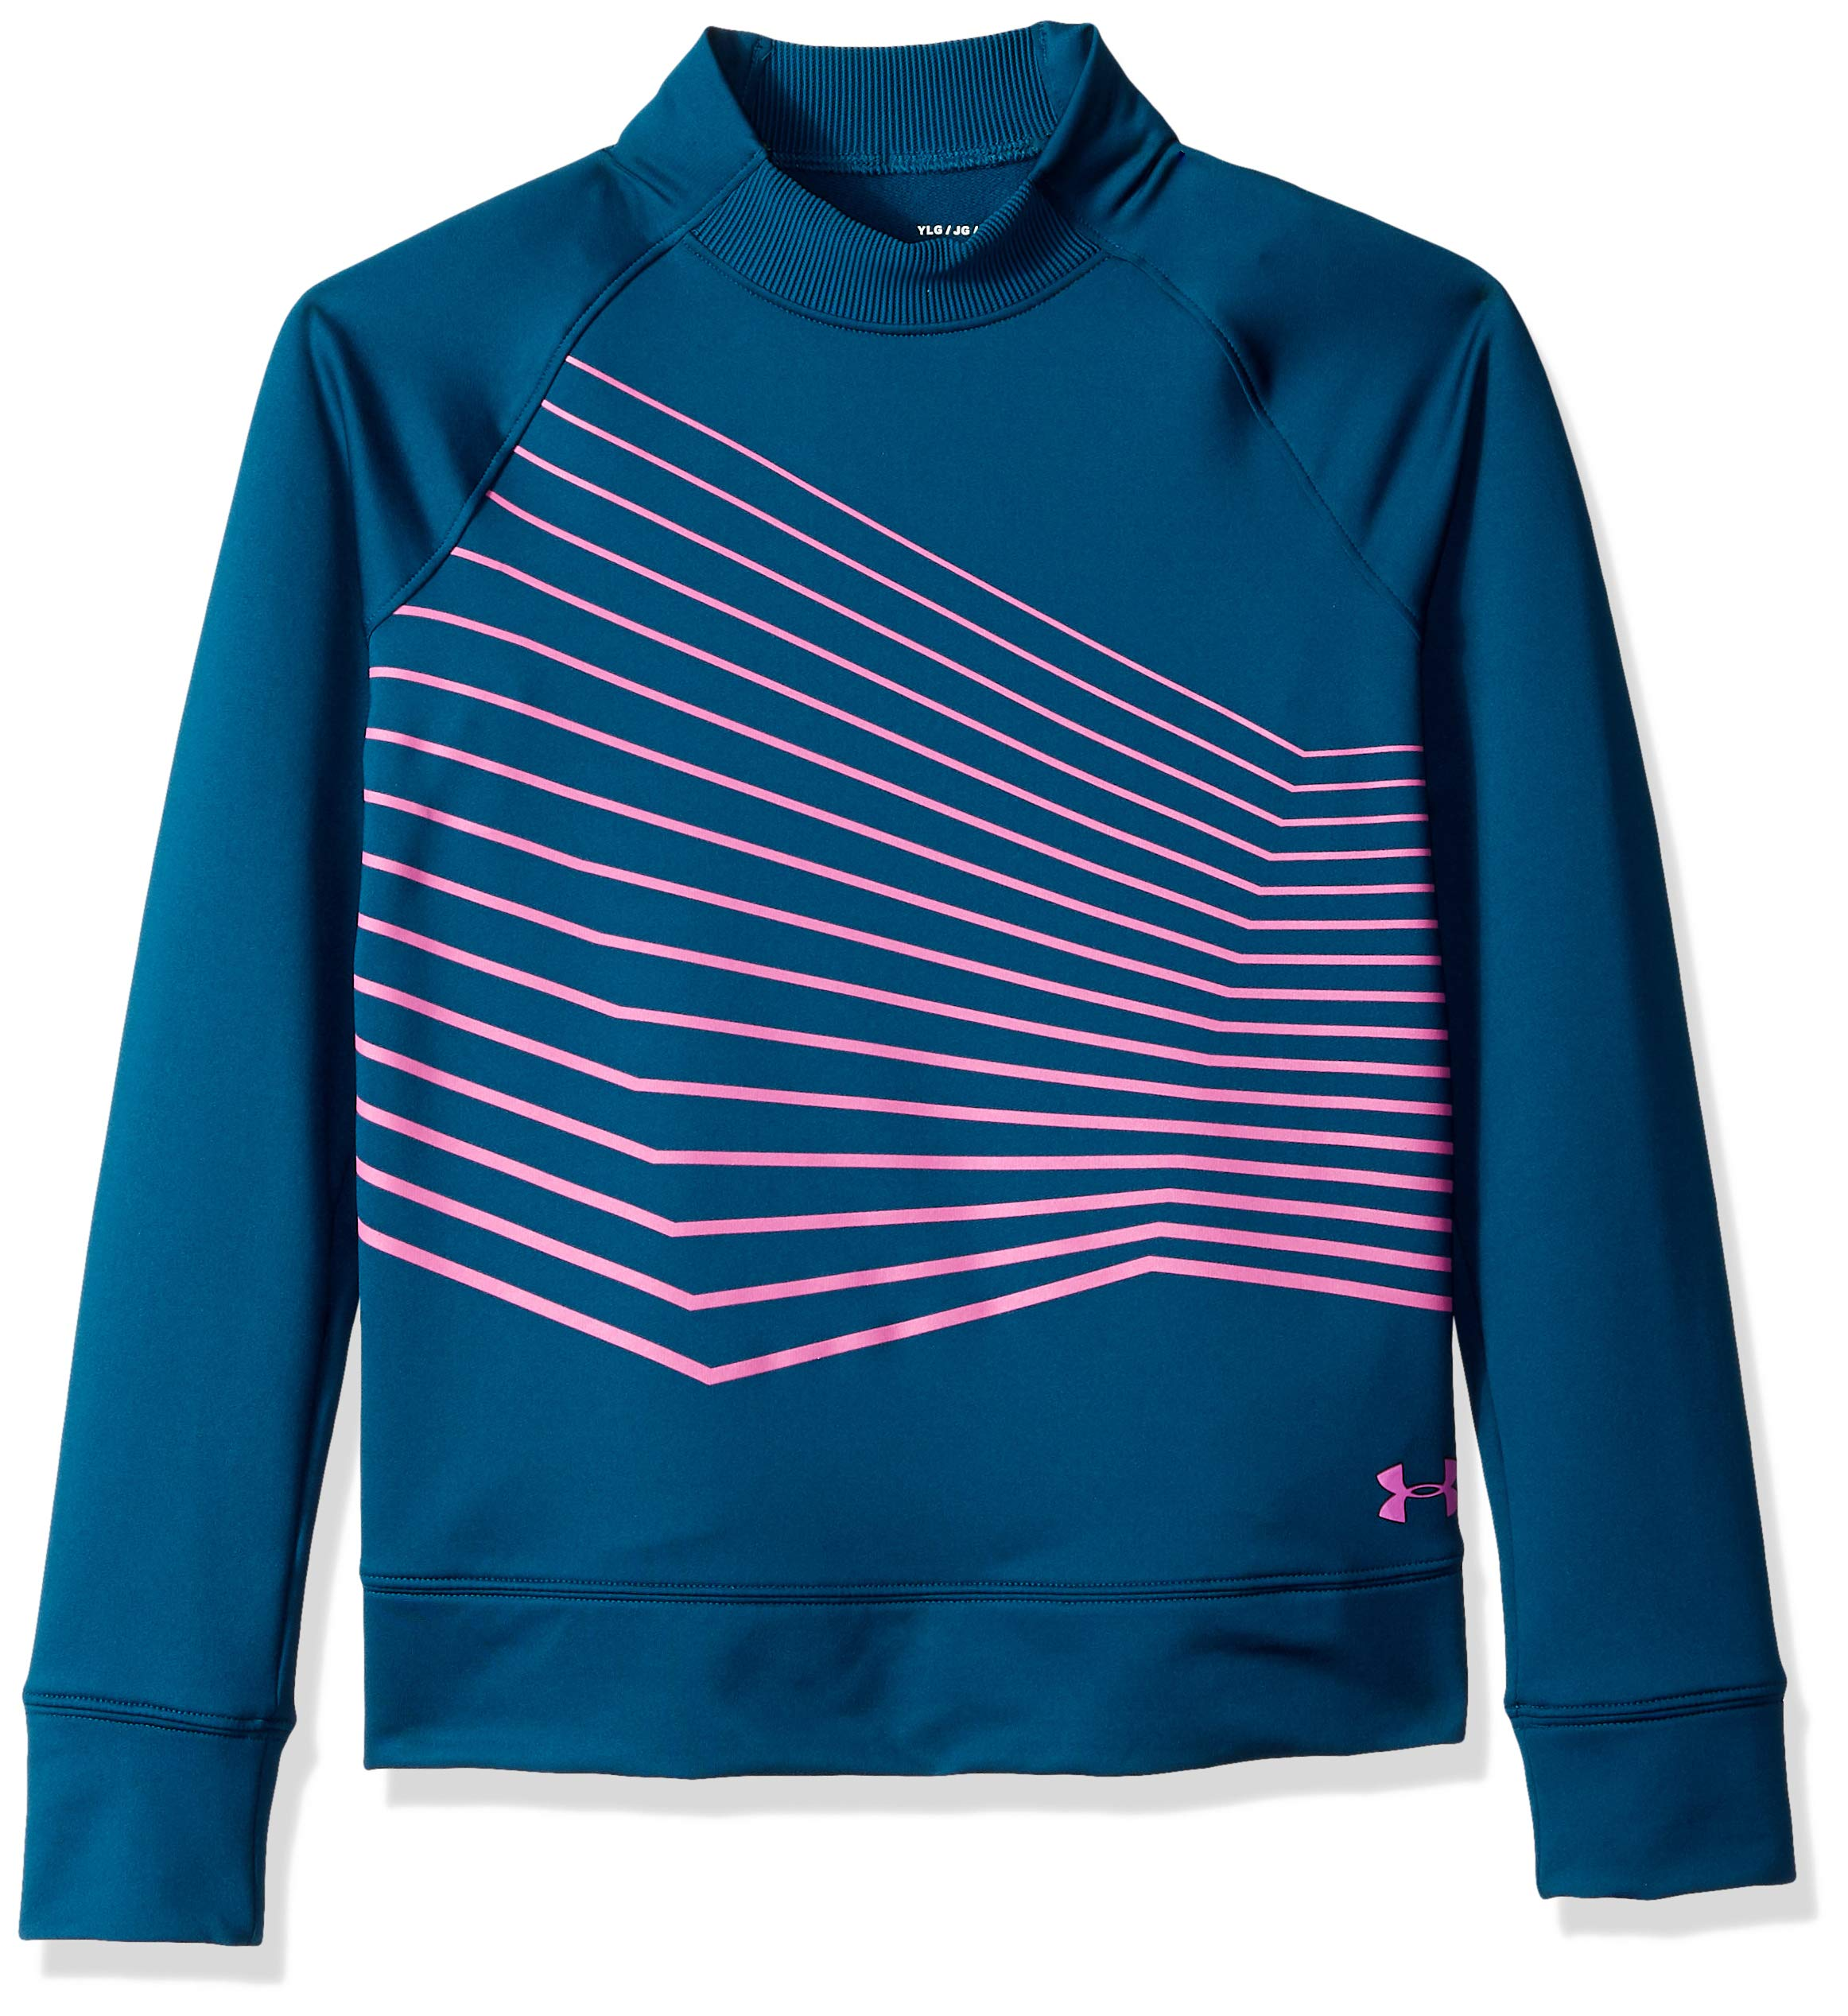 Under Armour Girls Coldgear Mock Long sleeve Sweatshirt, Techno Teal (489)/Fluo Fuchsia, Youth Medium by Under Armour